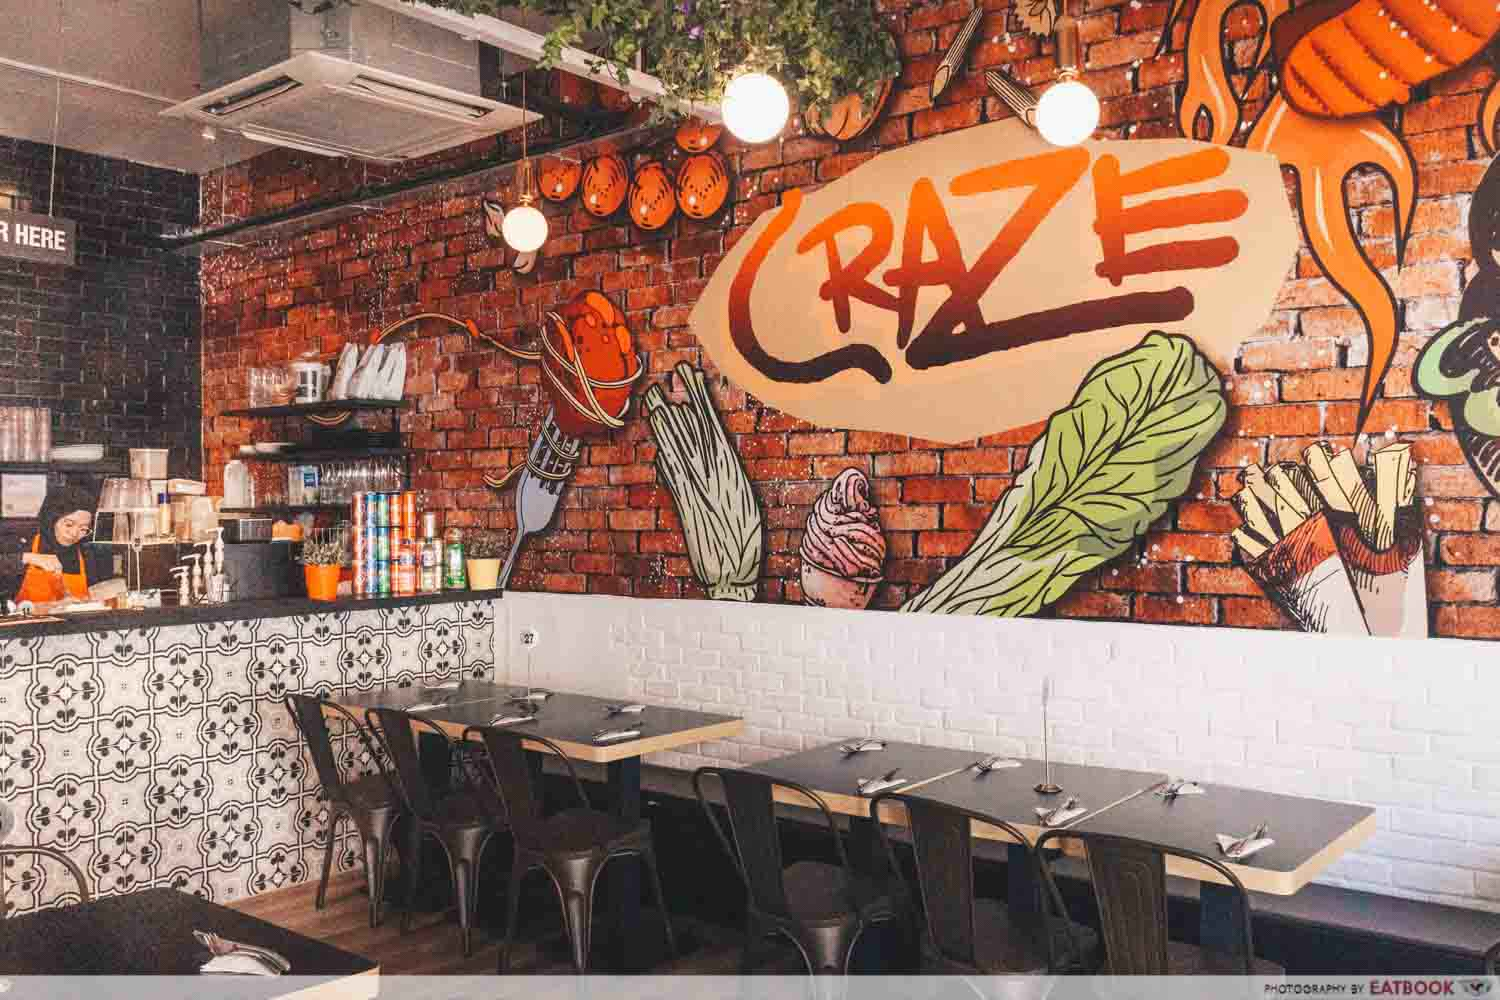 Craze Kitchen - Ambience